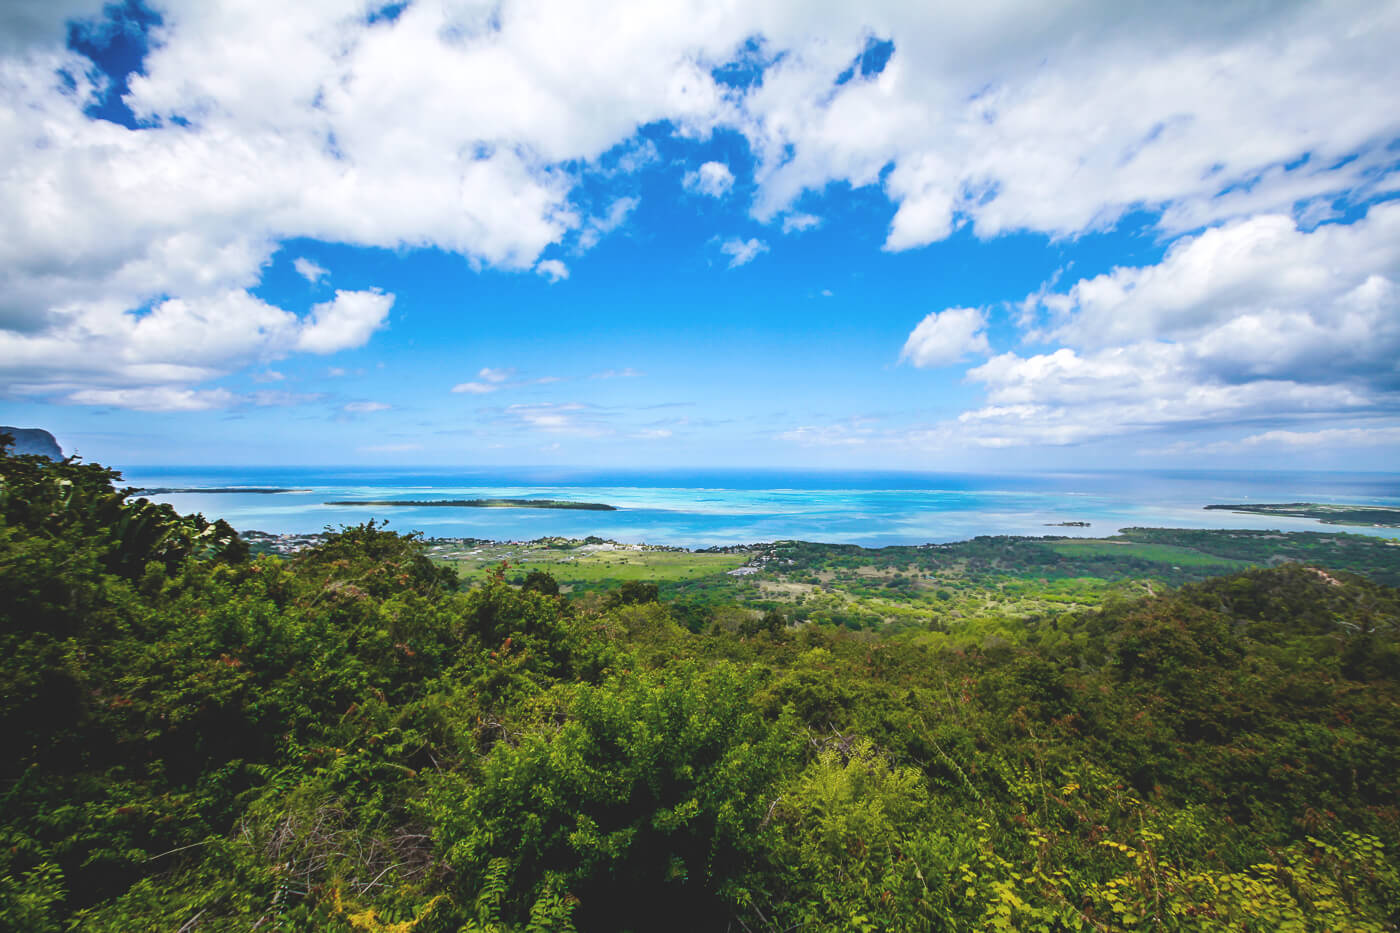 mauritius-sehenswuerdigkeiten-highlights-chamarel-view-point